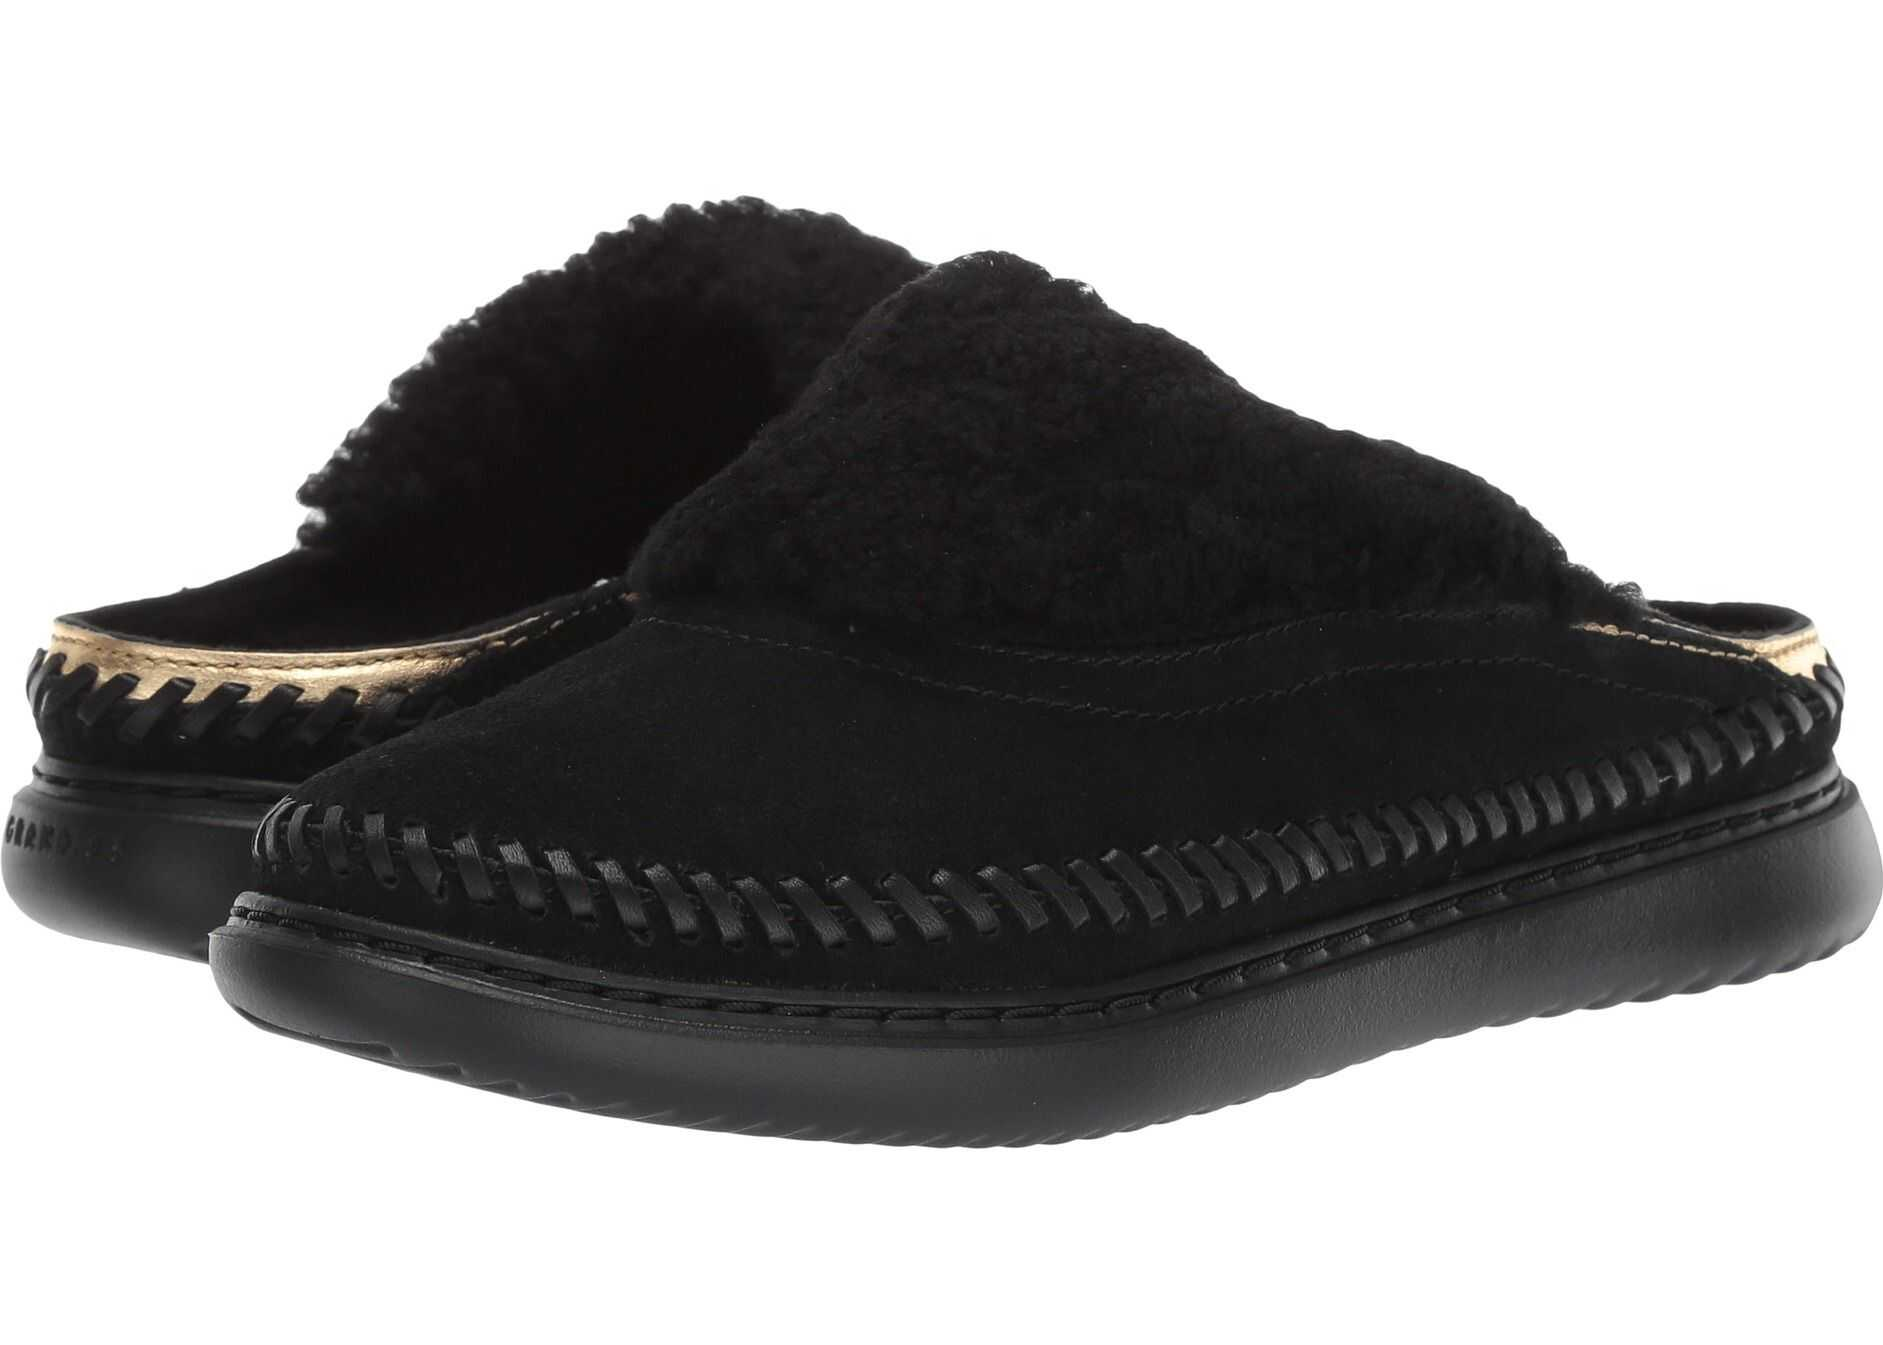 Cole Haan 2.ZeroGrand Convertible Slip-On Black Suede/Ch Gold Metallic Leather/Black Shearling/Black